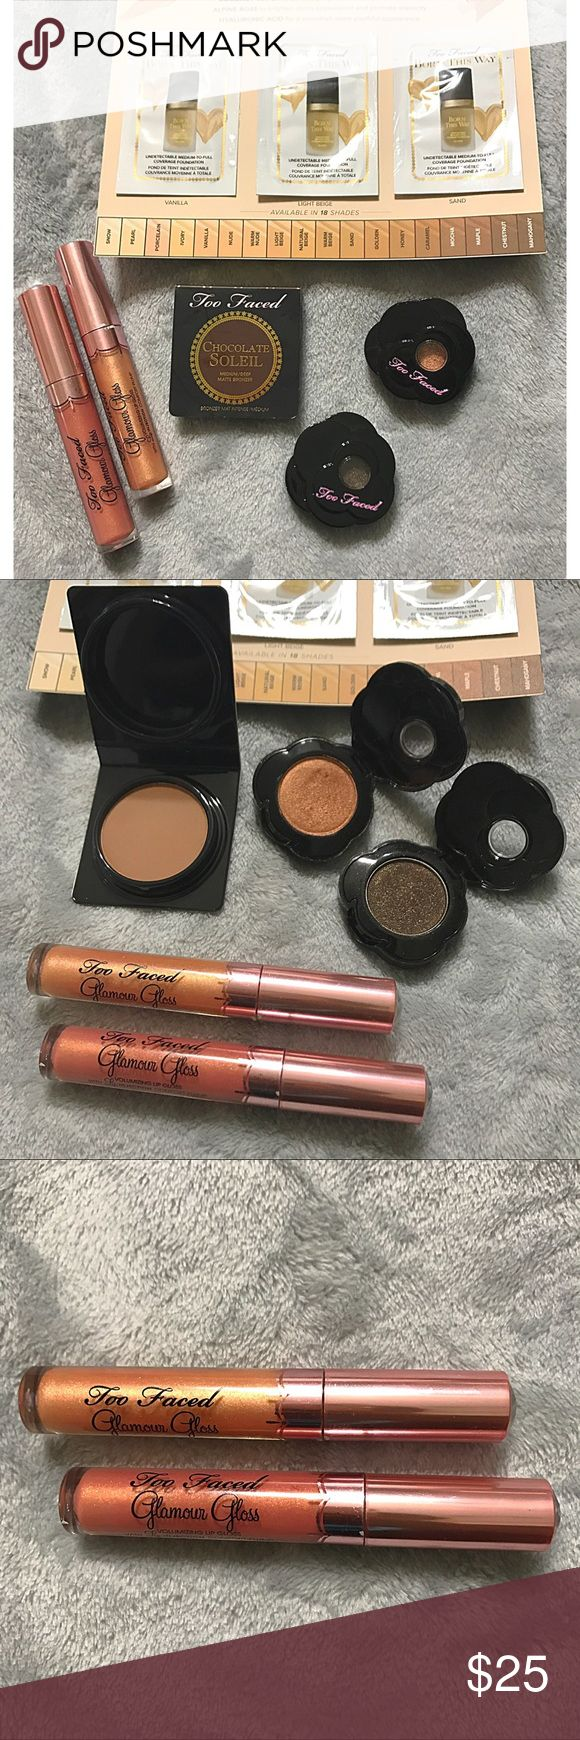 TOO FACED Eyeshadow, Bronzer & Lipgloss Lot Too Faced Eyeshadow, Bronzer & Lipgloss Lot. Authentic Too Faced cosmetics ordered direct from toofaced.com. Some items no longer sold. 2 shadows have been swatched, stored without box. 2 Lipglosses without boxes, tubes show signs of blemishes due to storage with other items in drawer, never used. Bronzer brand new, also never touched. 3 foundation samples included. Too Faced Makeup Eyeshadow